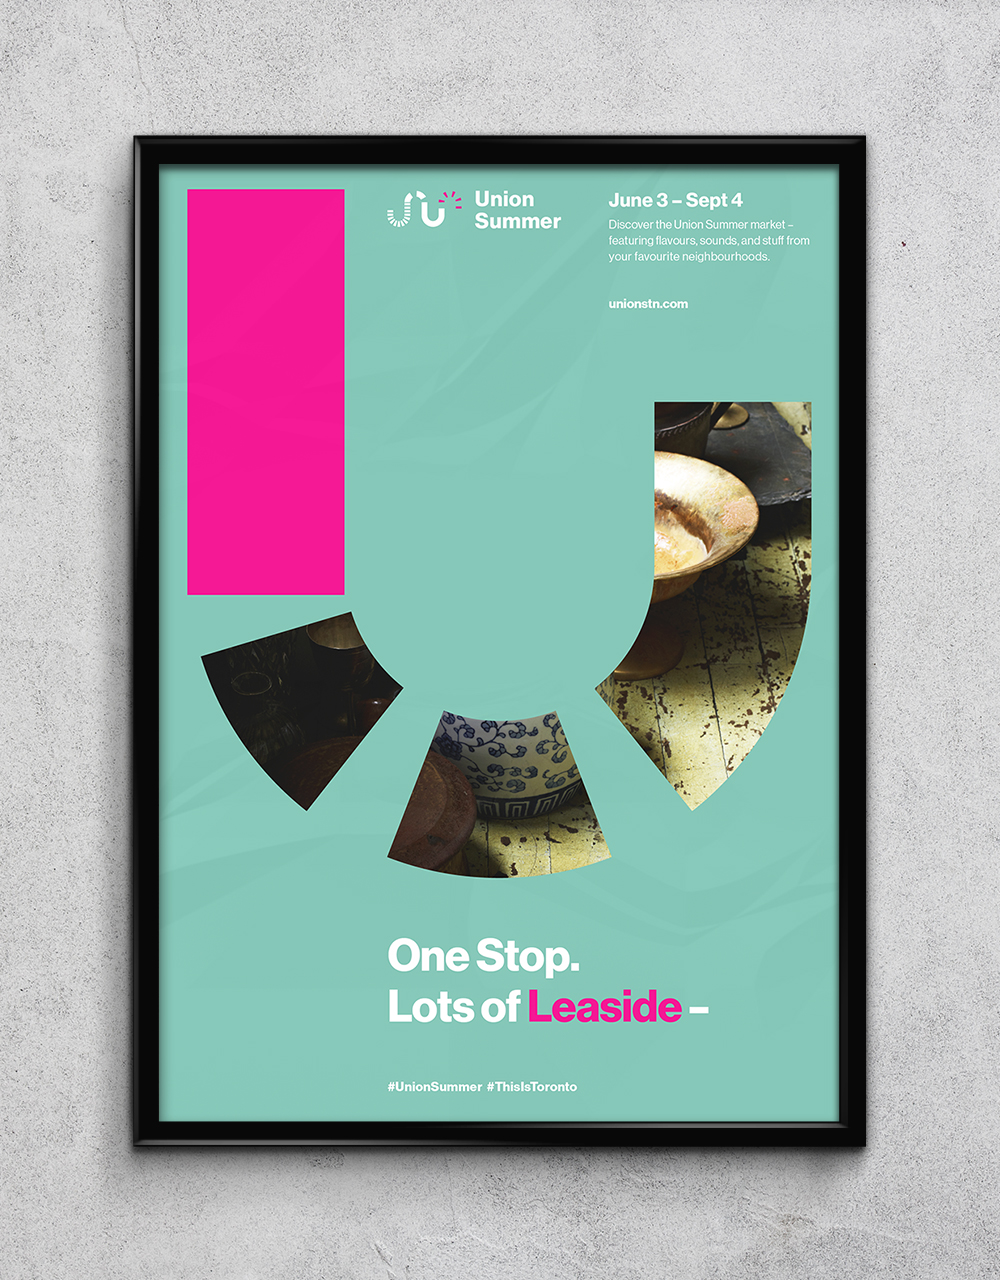 UNION_Poster Mockup Frame-3-leaside.jpg